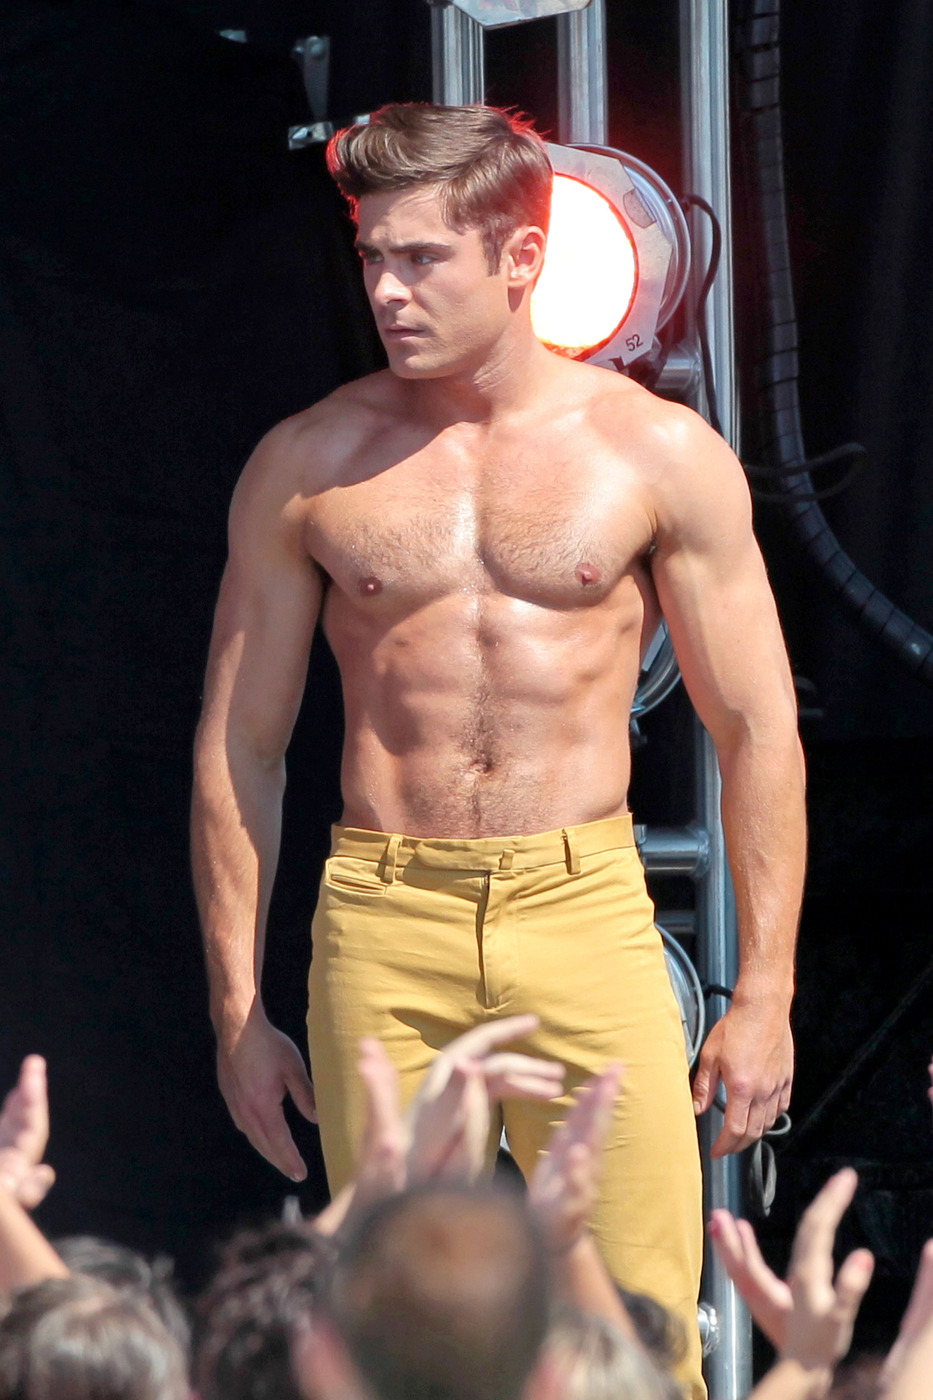 Images - Zac efron naked blog